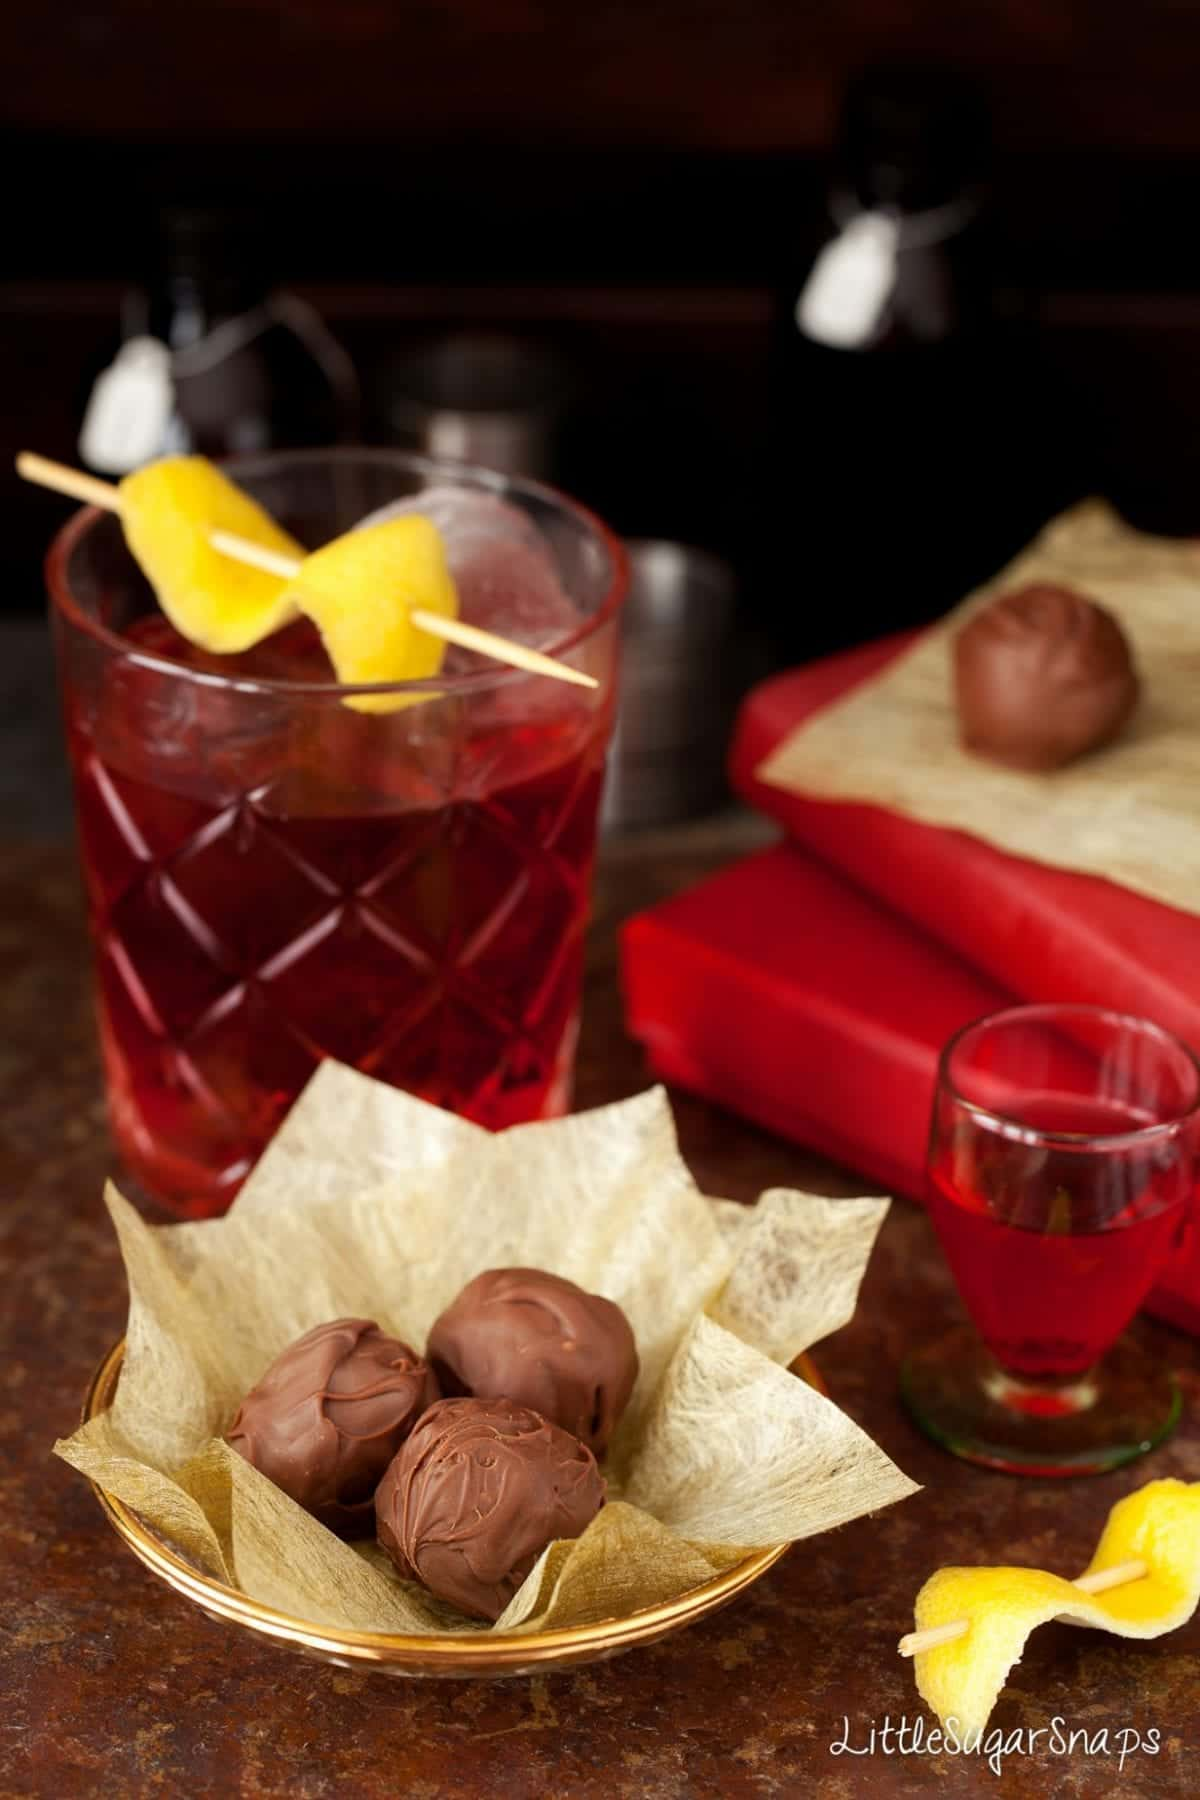 Negroni Truffles in front of a Negroni cocktail.